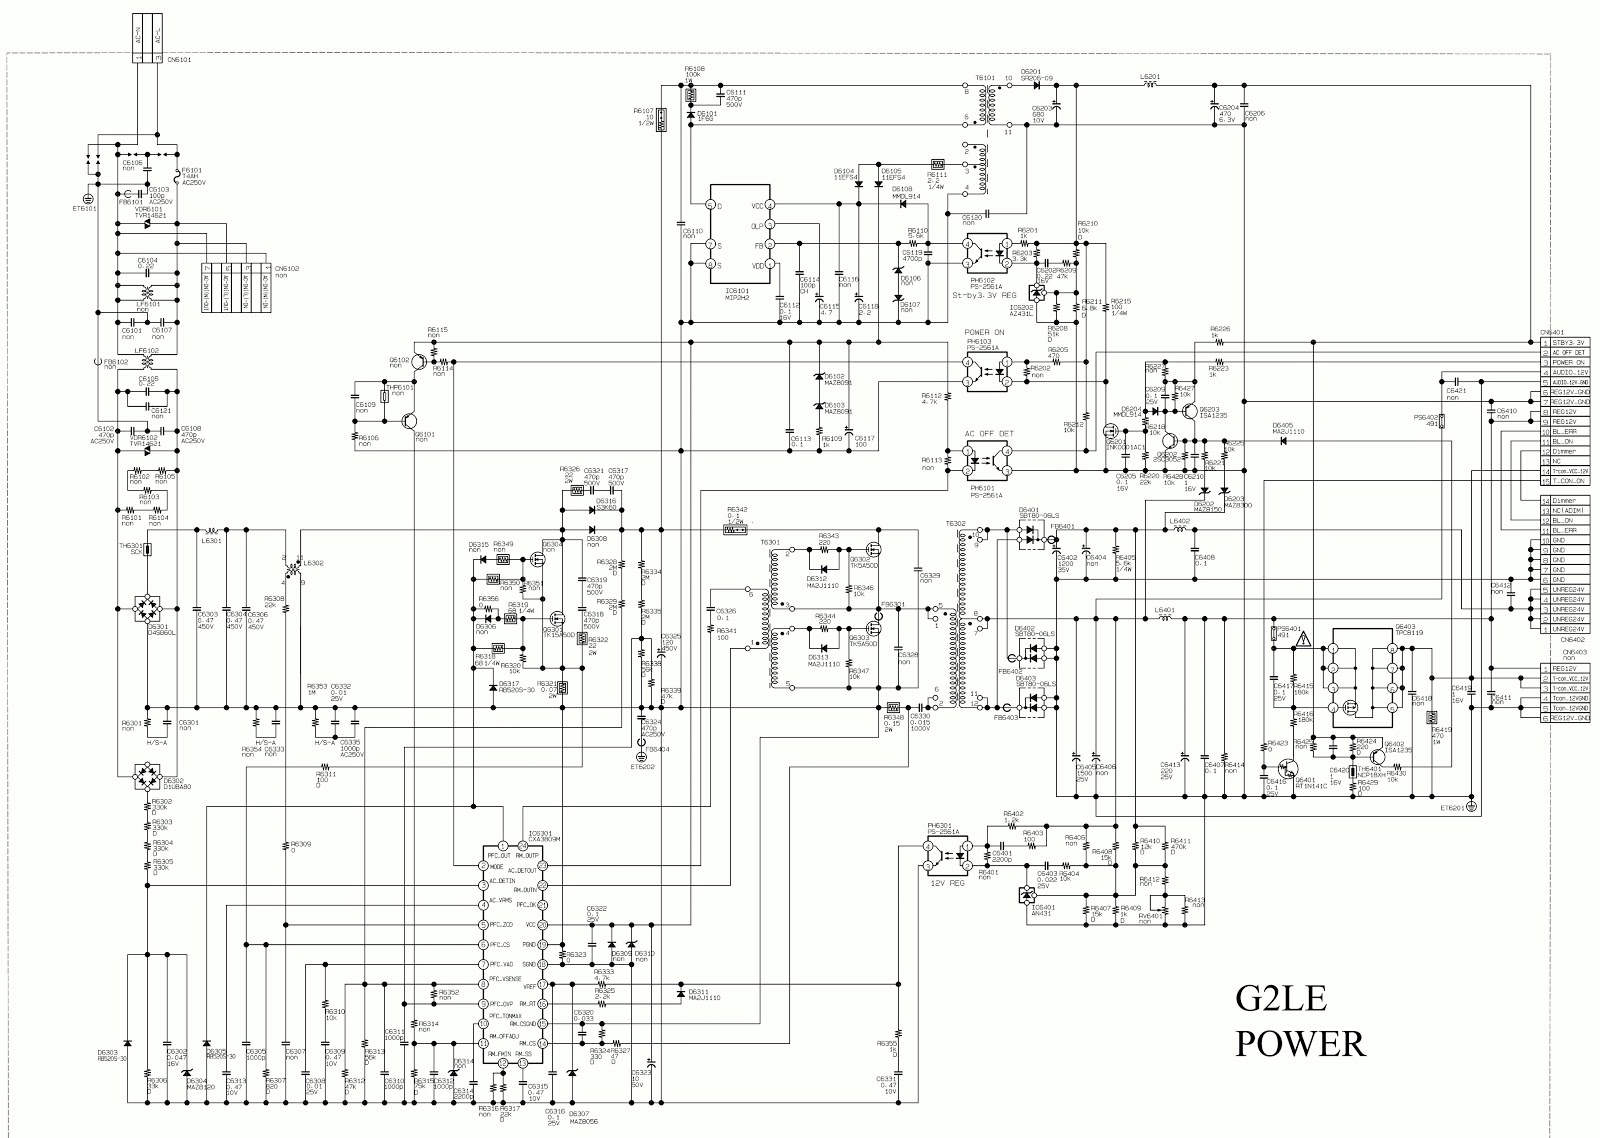 enphase combiner box wiring diagram enphase micro inverter